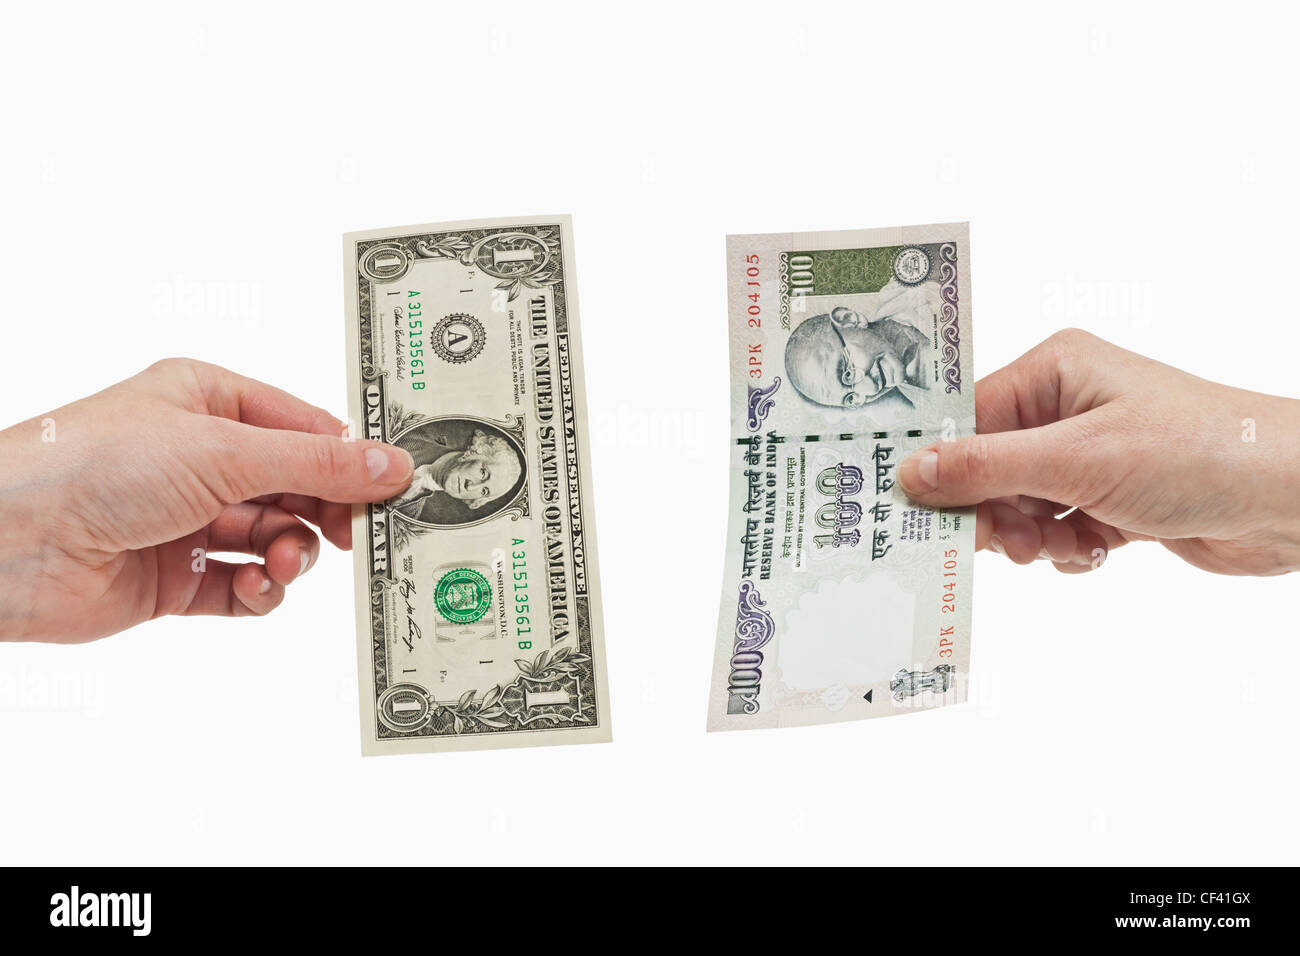 One 1 U.S. Dollar bill is held in the hand. At the other side a Indian 100 rupees bill is held in the hand, background - Stock Image